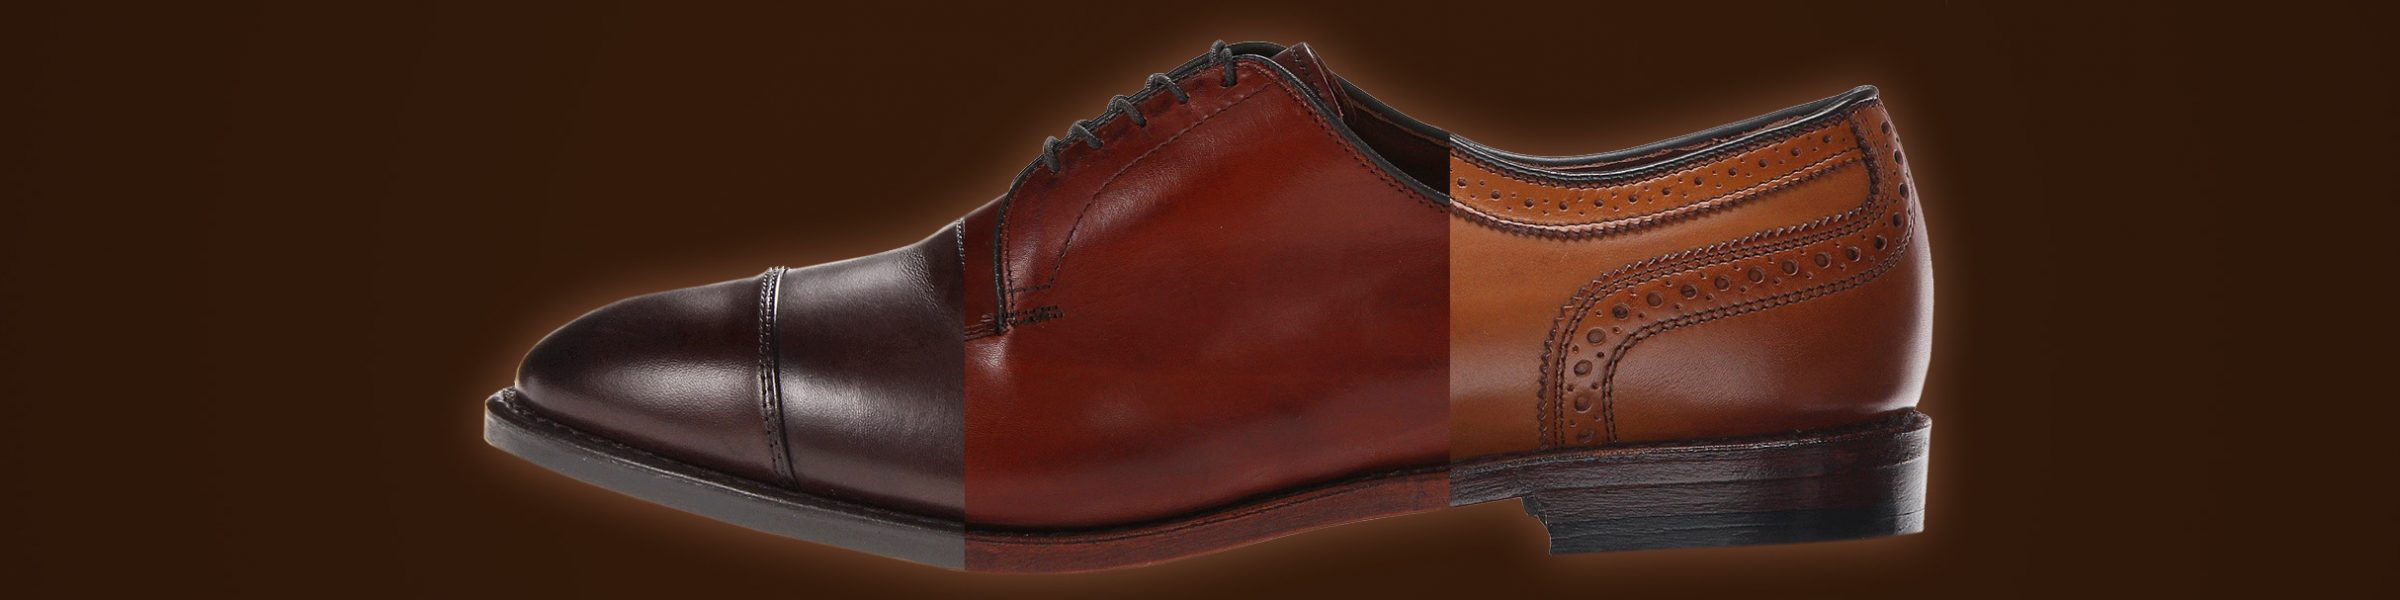 9950f71b7 Men s Brown Dress Shoes  The Ultimate Guide